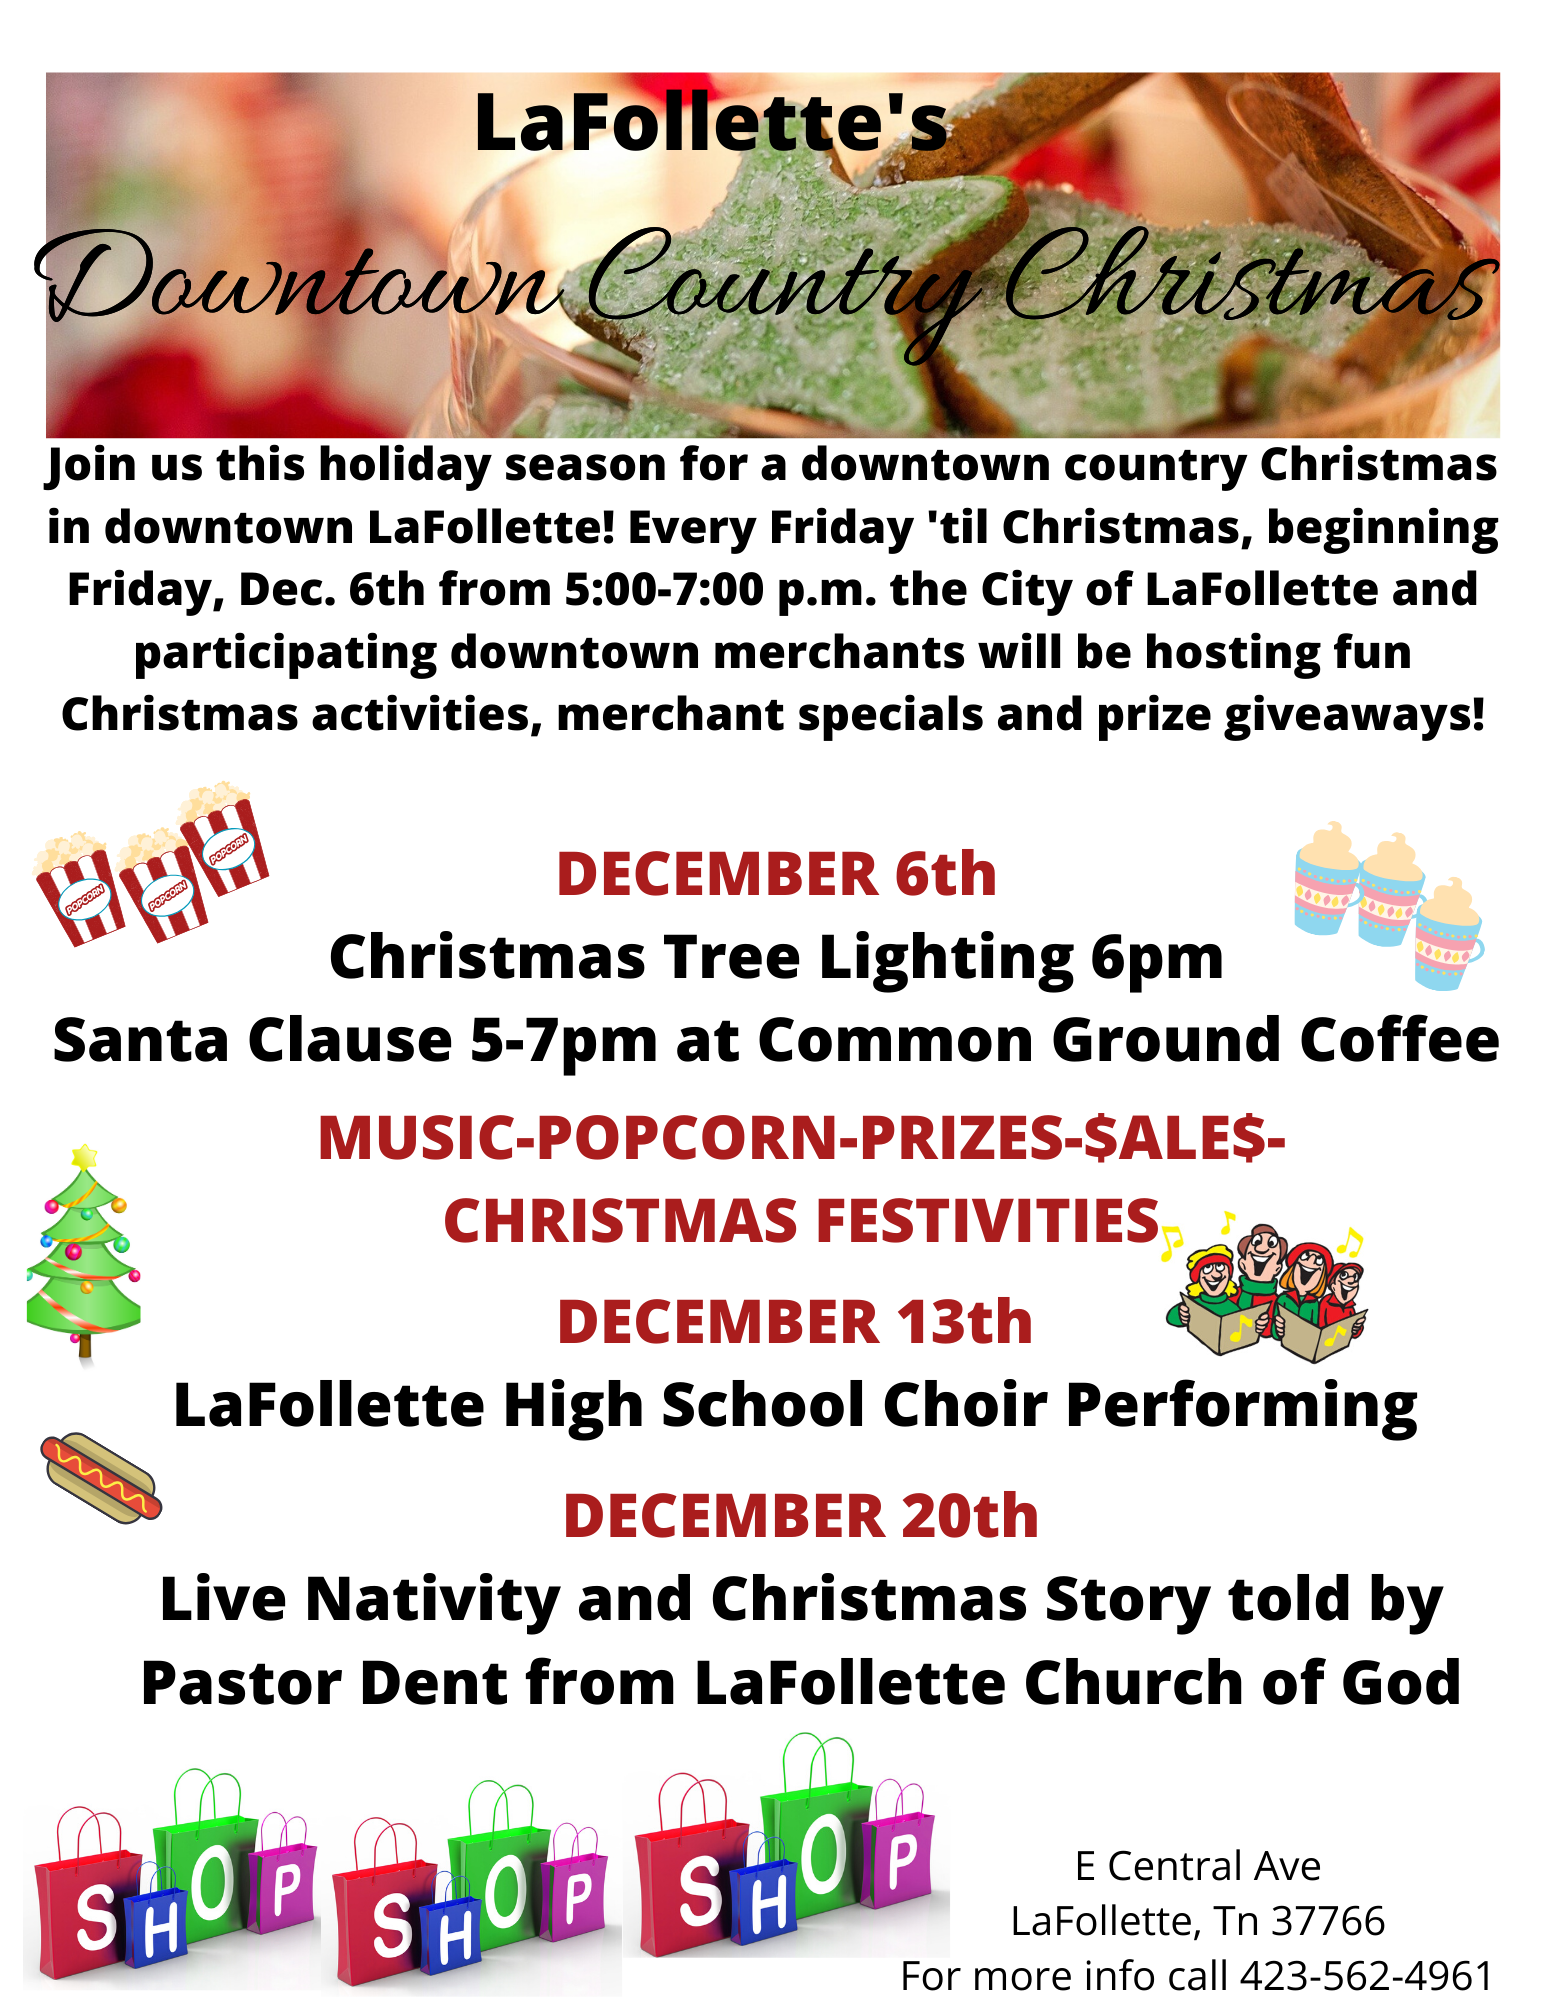 City of LaFollette and downtown merchants are hosting a Downtown country Christmas on Dec. 6th, 13th and 20th from 4-7 p.m. There will be many sales and prize drawings.